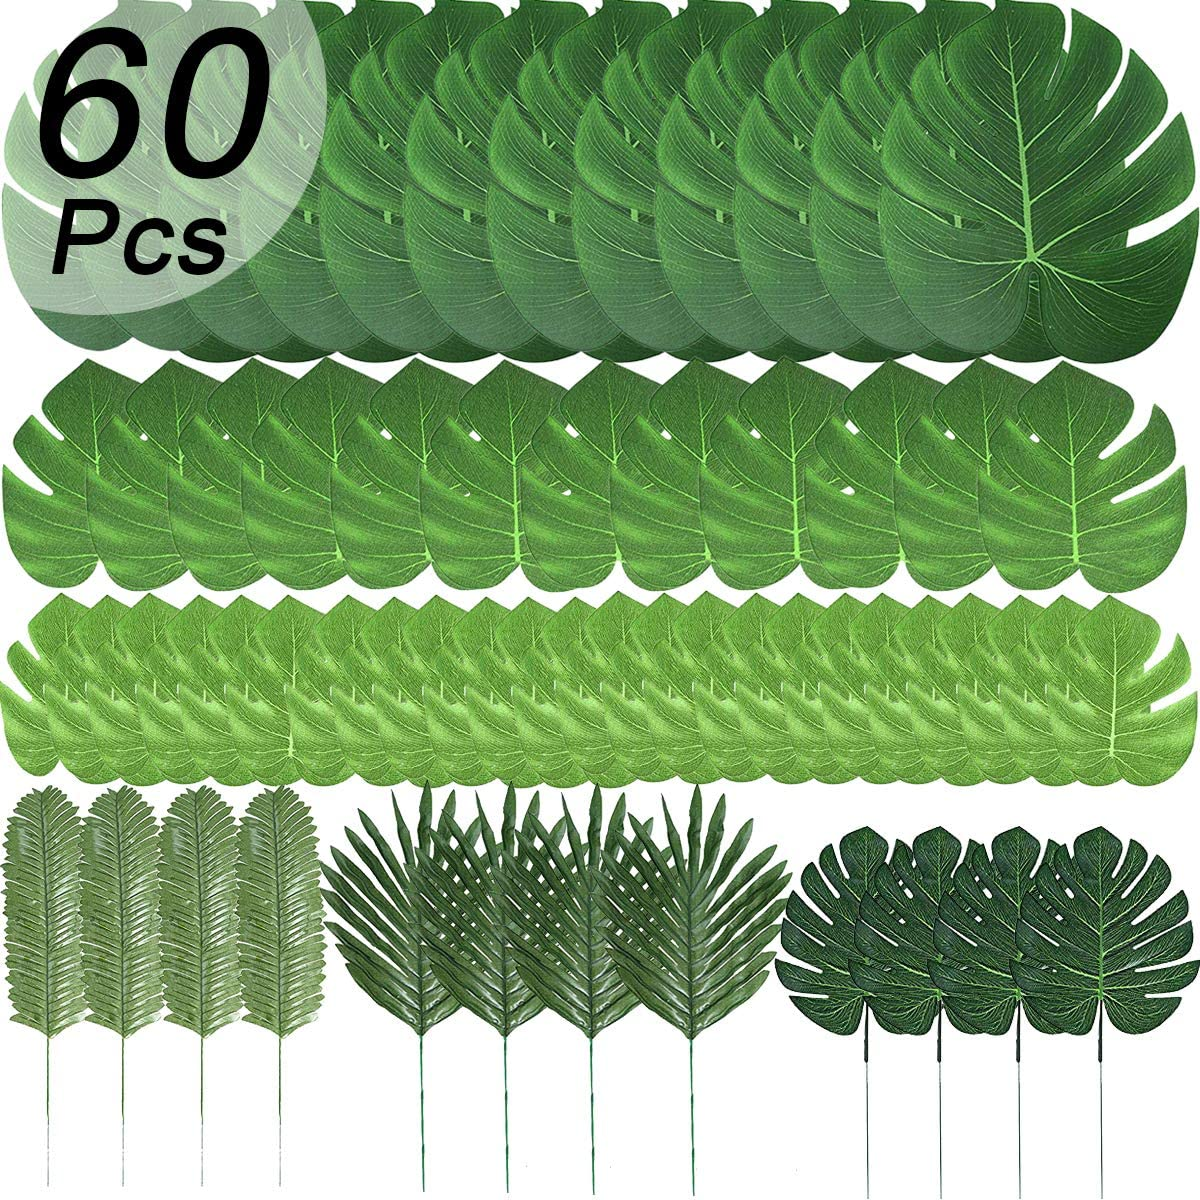 60 Pcs 6 Kinds Artificial Palm Leaves Tropical Plant Safari Leaves Faux Monstera Leaves Stems for Hawaiian Luau Party Decorations, Tiki Aloha Jungle Beach Theme Party Table Leave Decorations